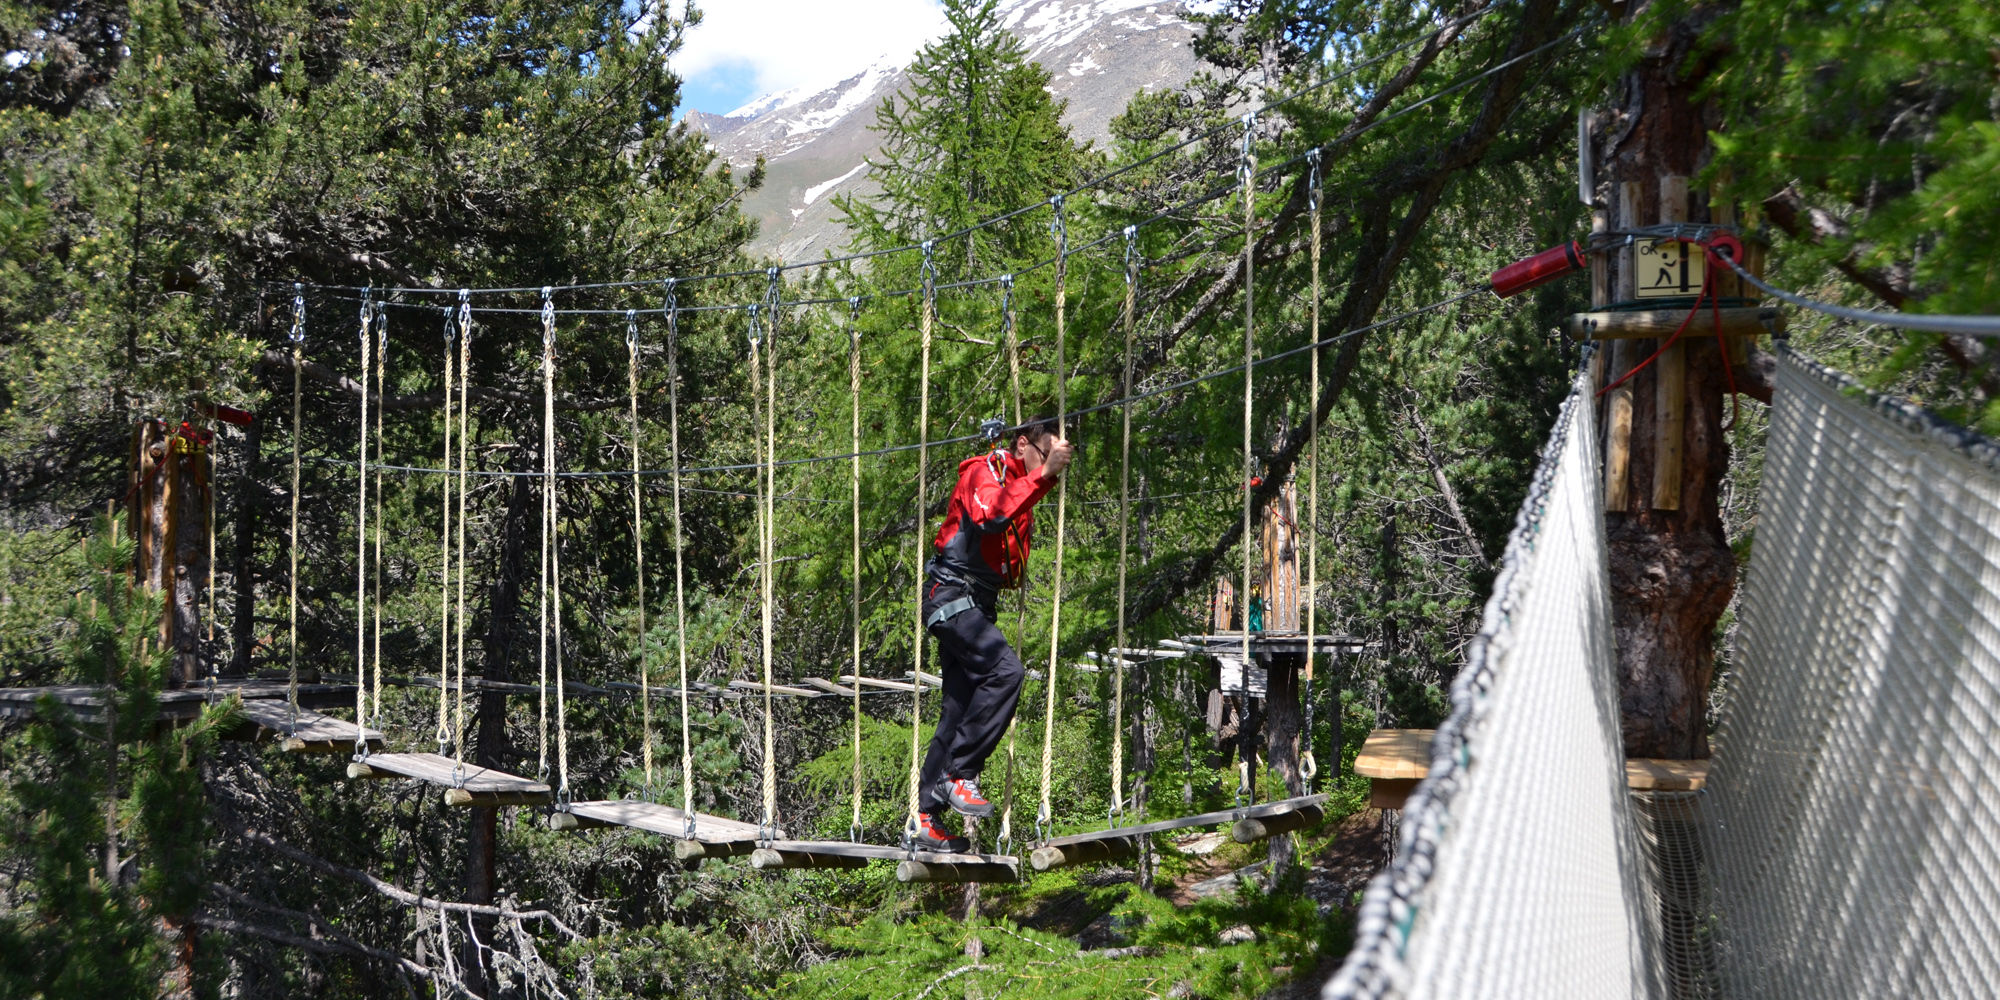 Rope park in the Free Republic of Holidays Saas-Fee